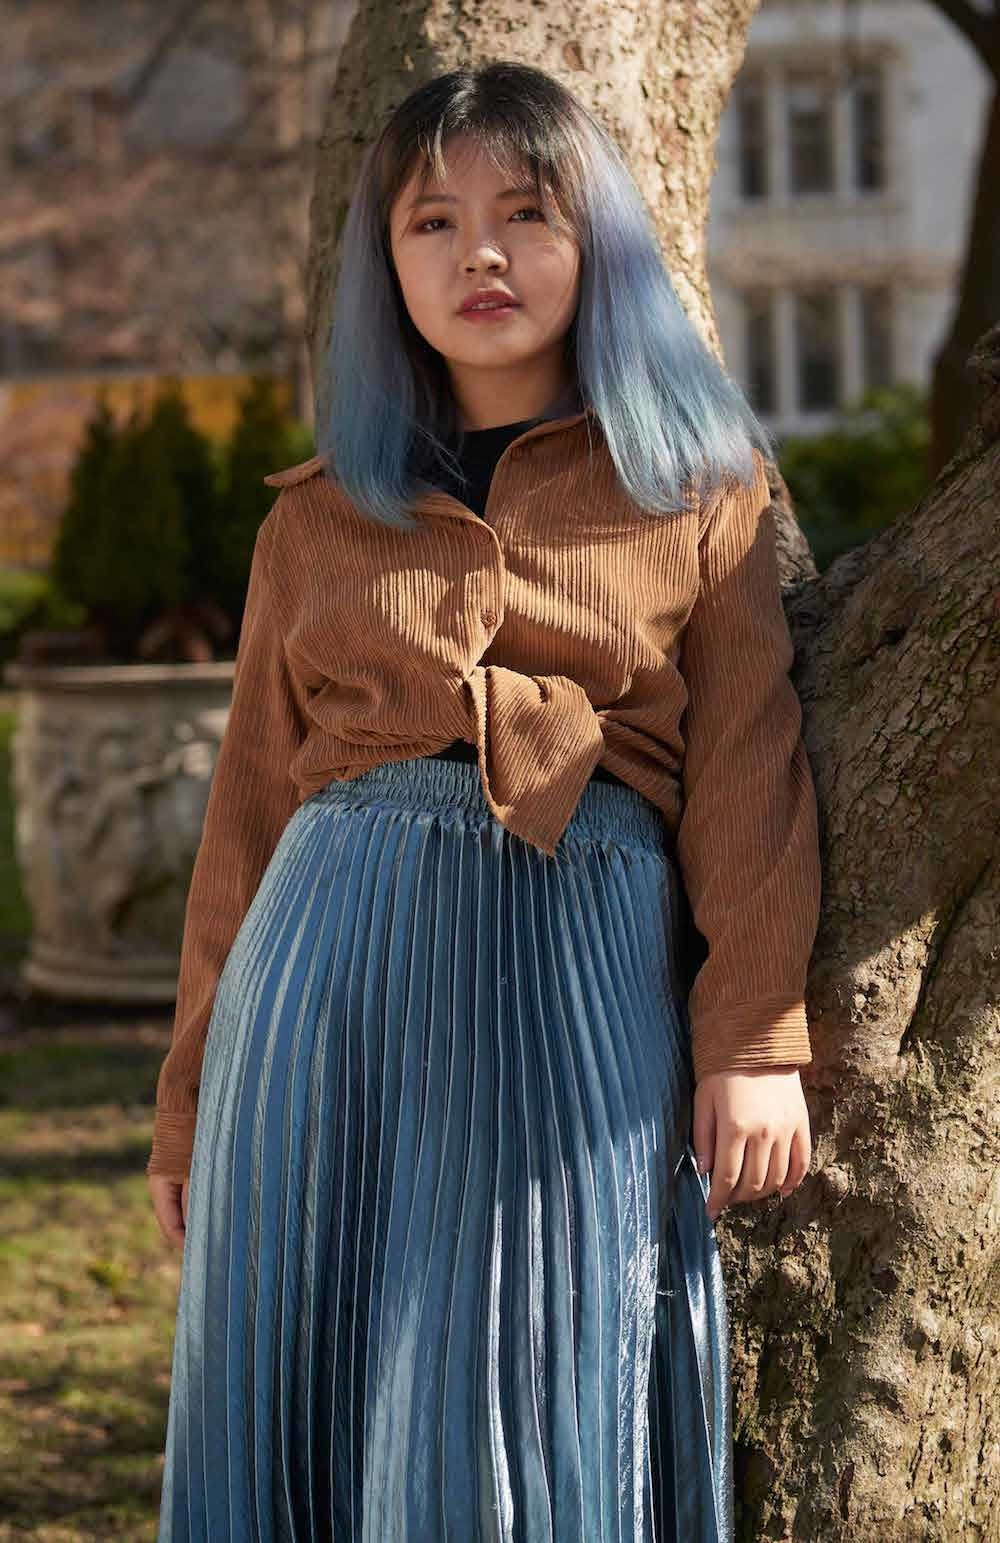 A young woman with dyed blue hair, corduroy shirt and pleated blue skirt.